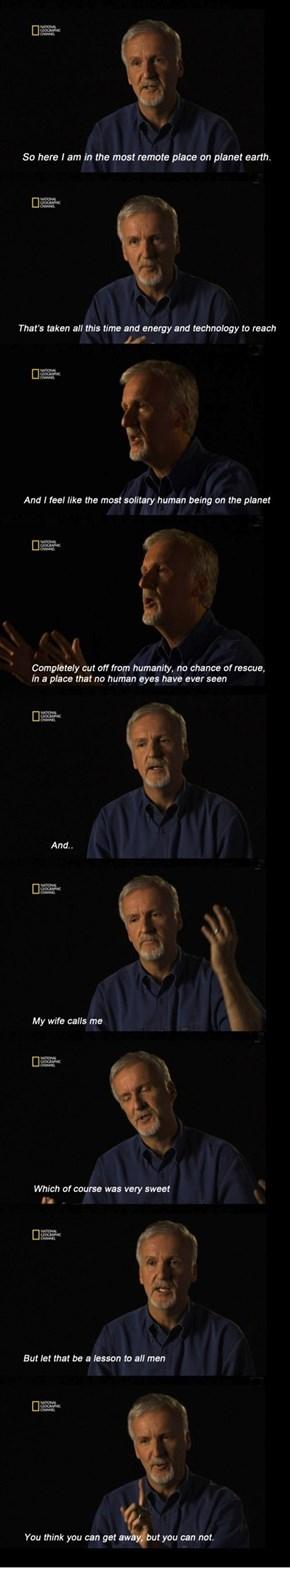 James Cameron Gives Advice to Men Everywhere